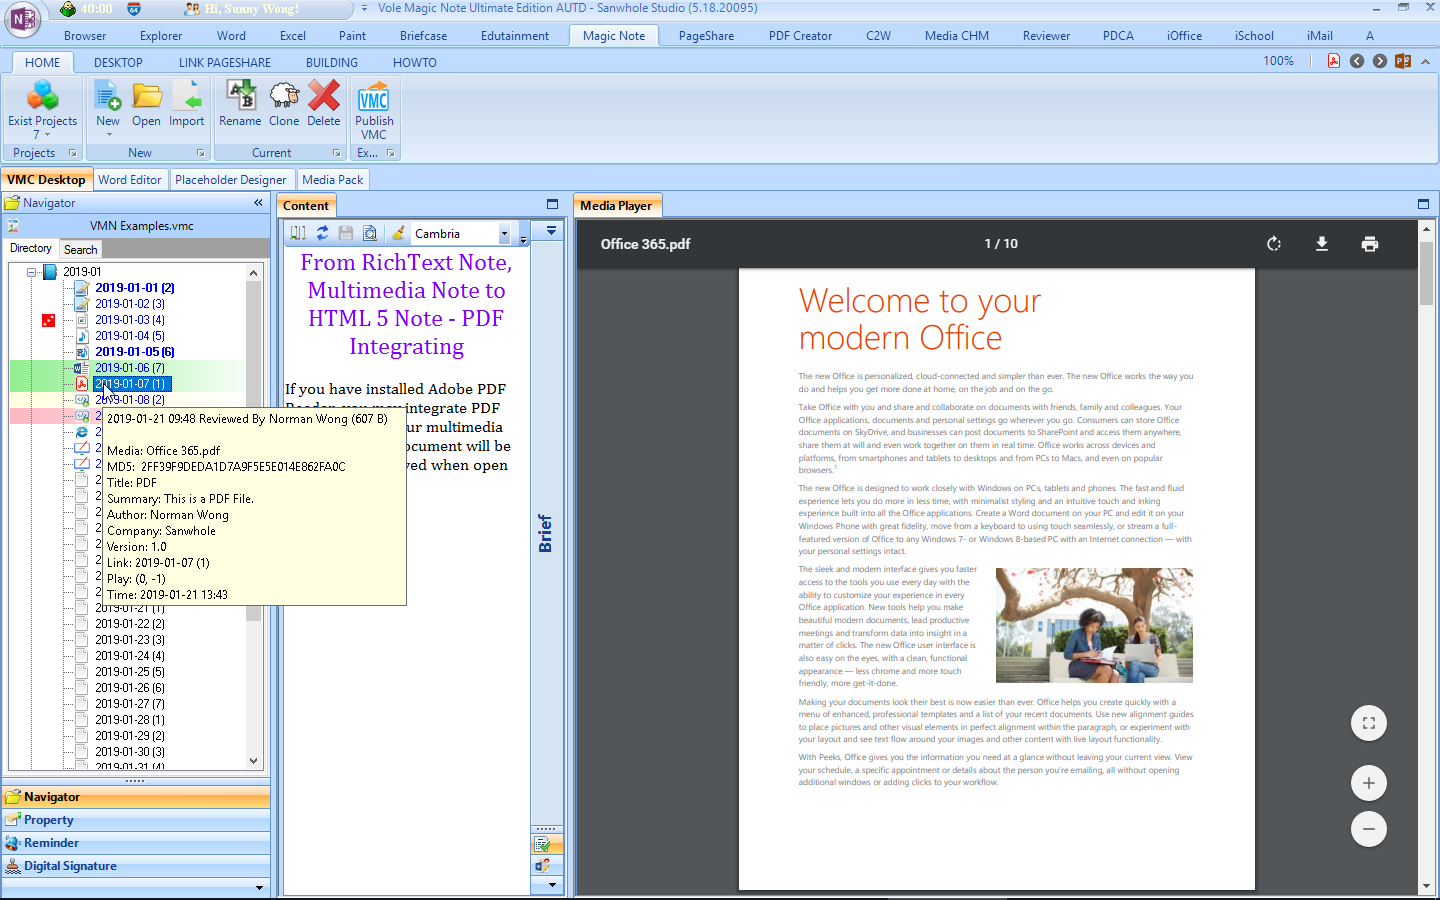 Hobby, Educational & Fun Software, Vole Magic Note Professional Edition Screenshot